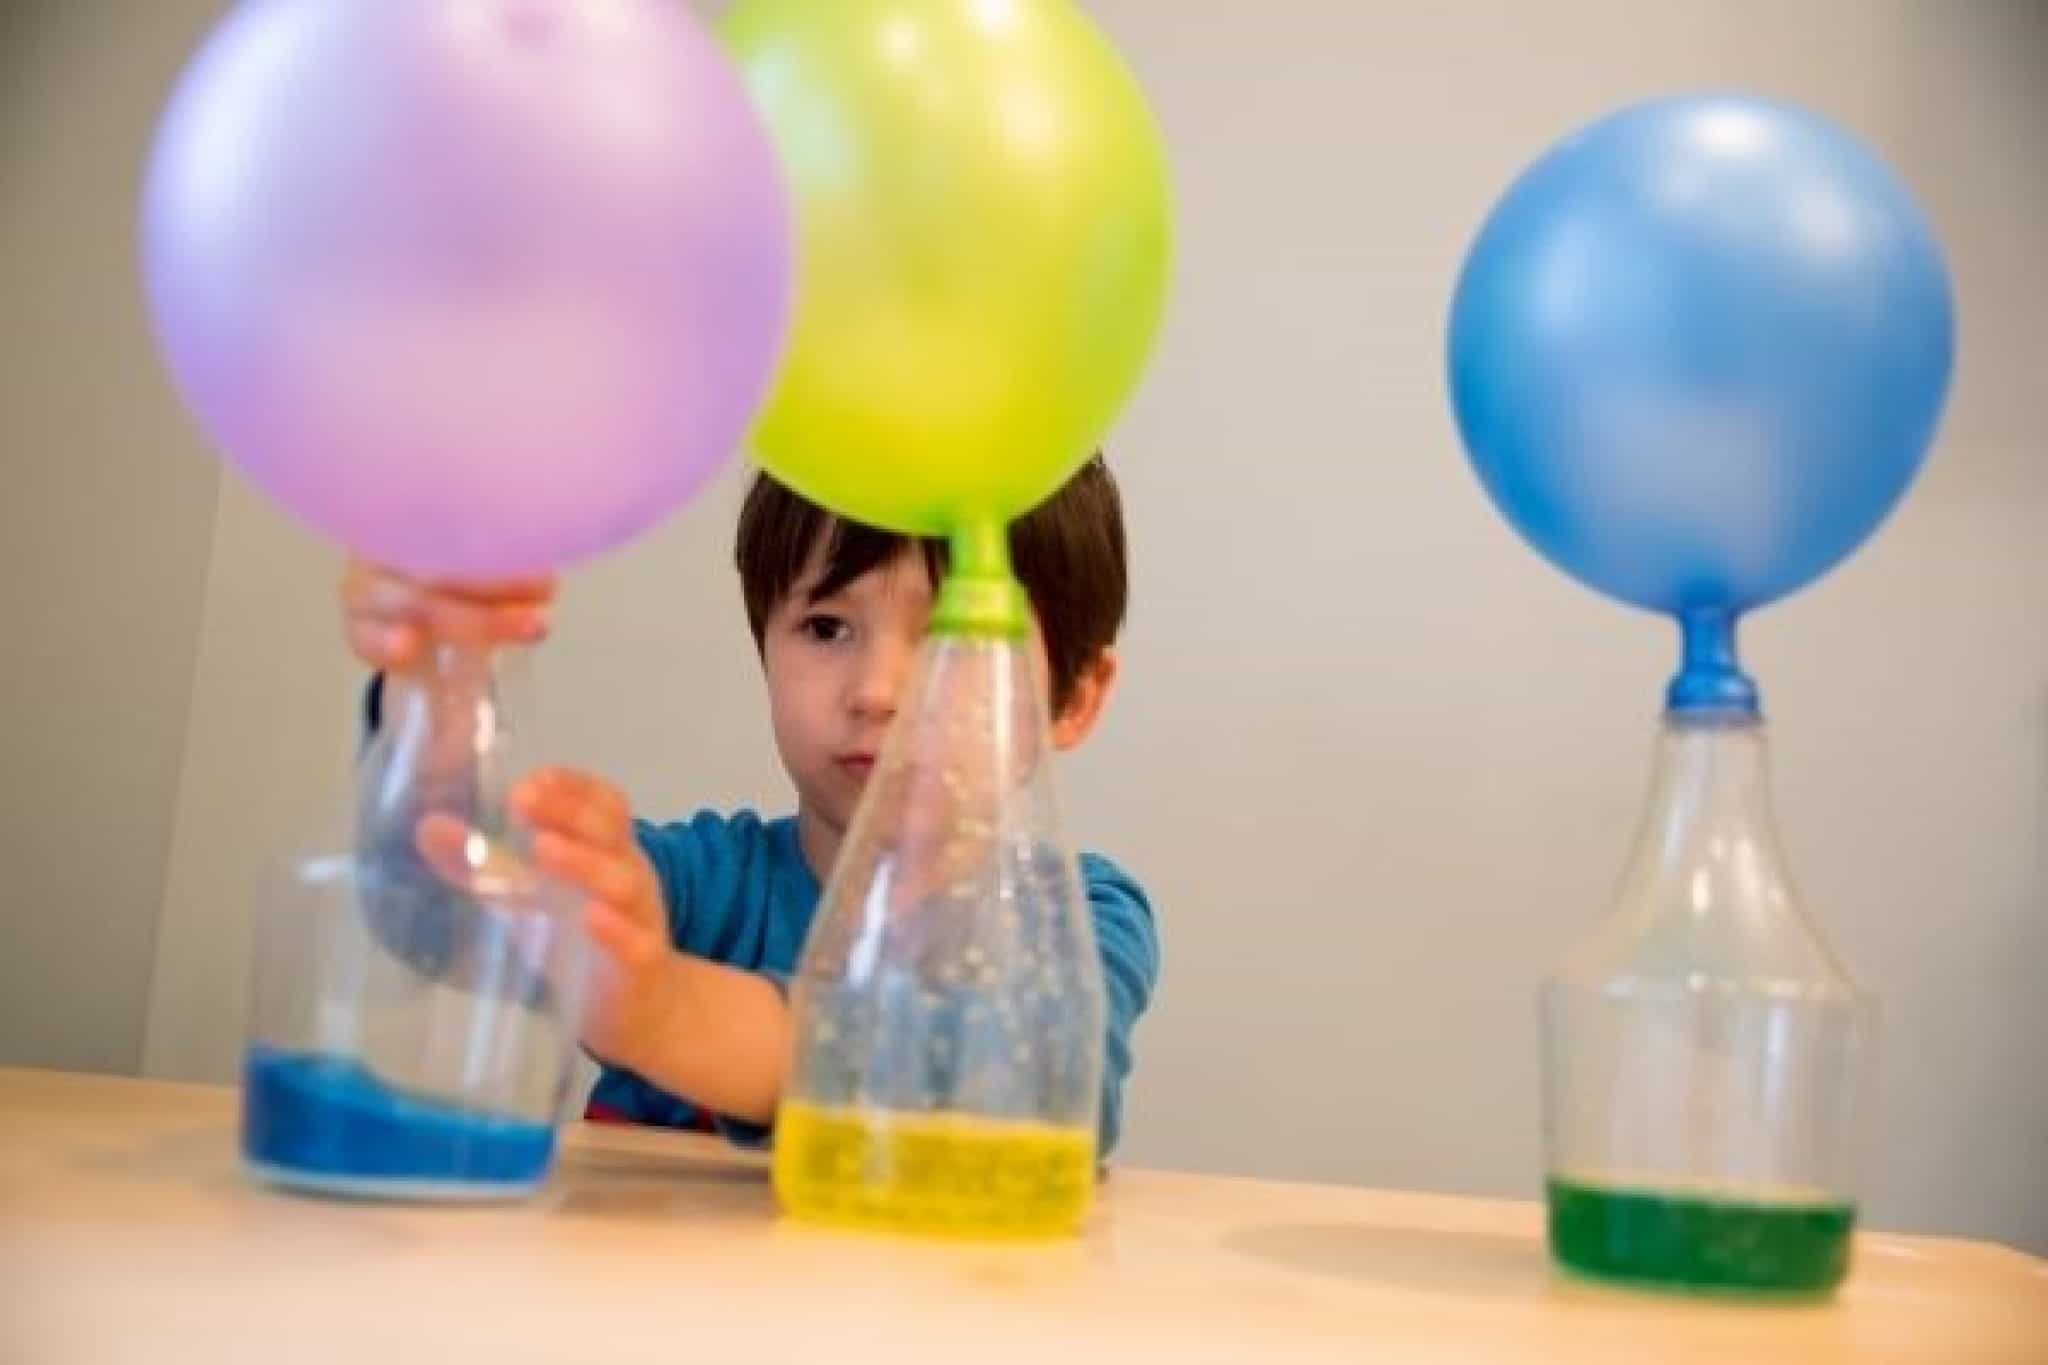 Child doing STEM project with balloons